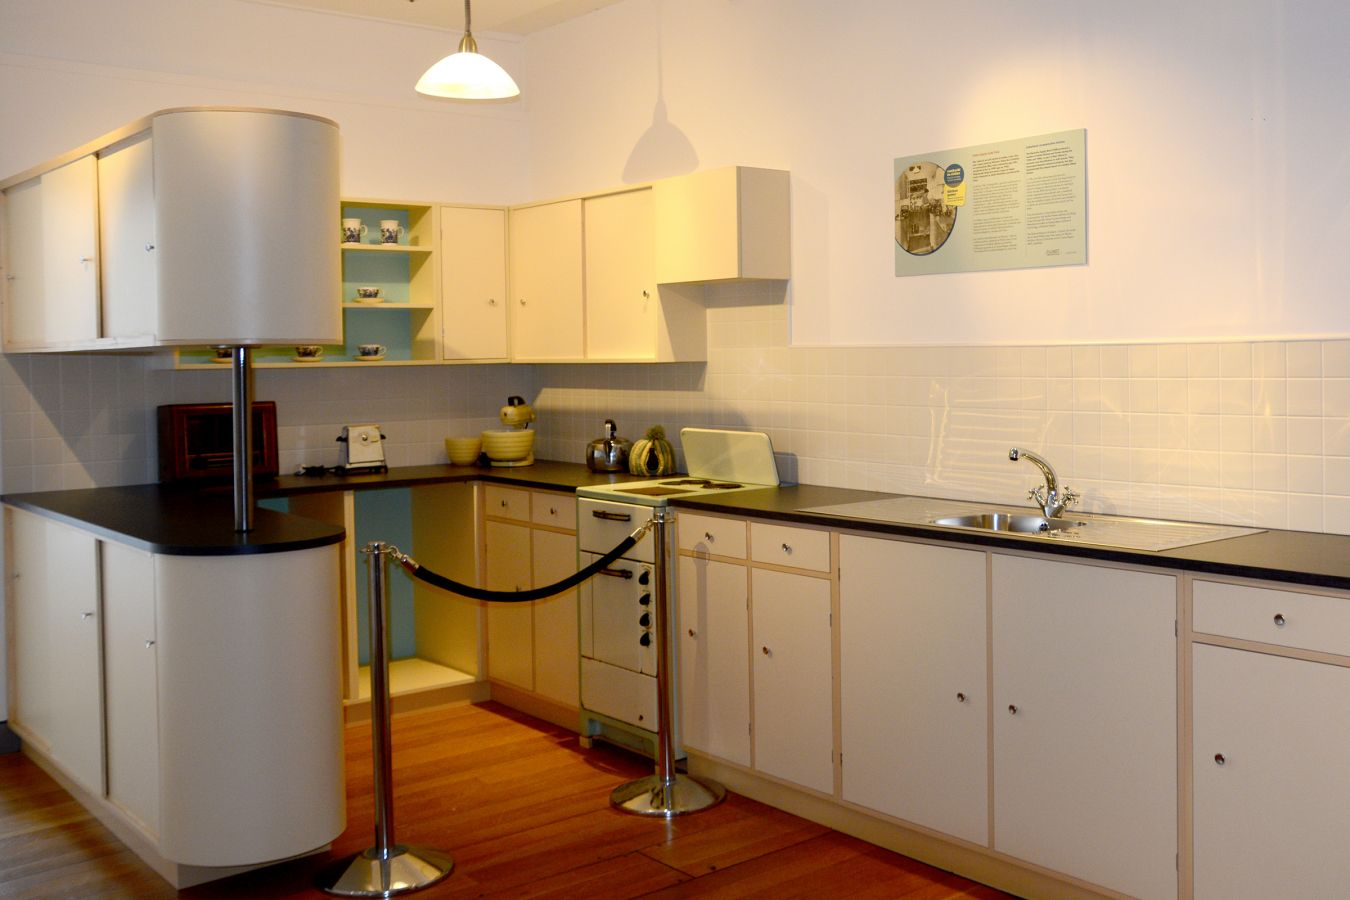 Reconstruction of a 1950s ESB/ICA model kitchen built from historical photographs by Phillip Carey, a furniture design student at Galway-Mayo Institute of Technology.